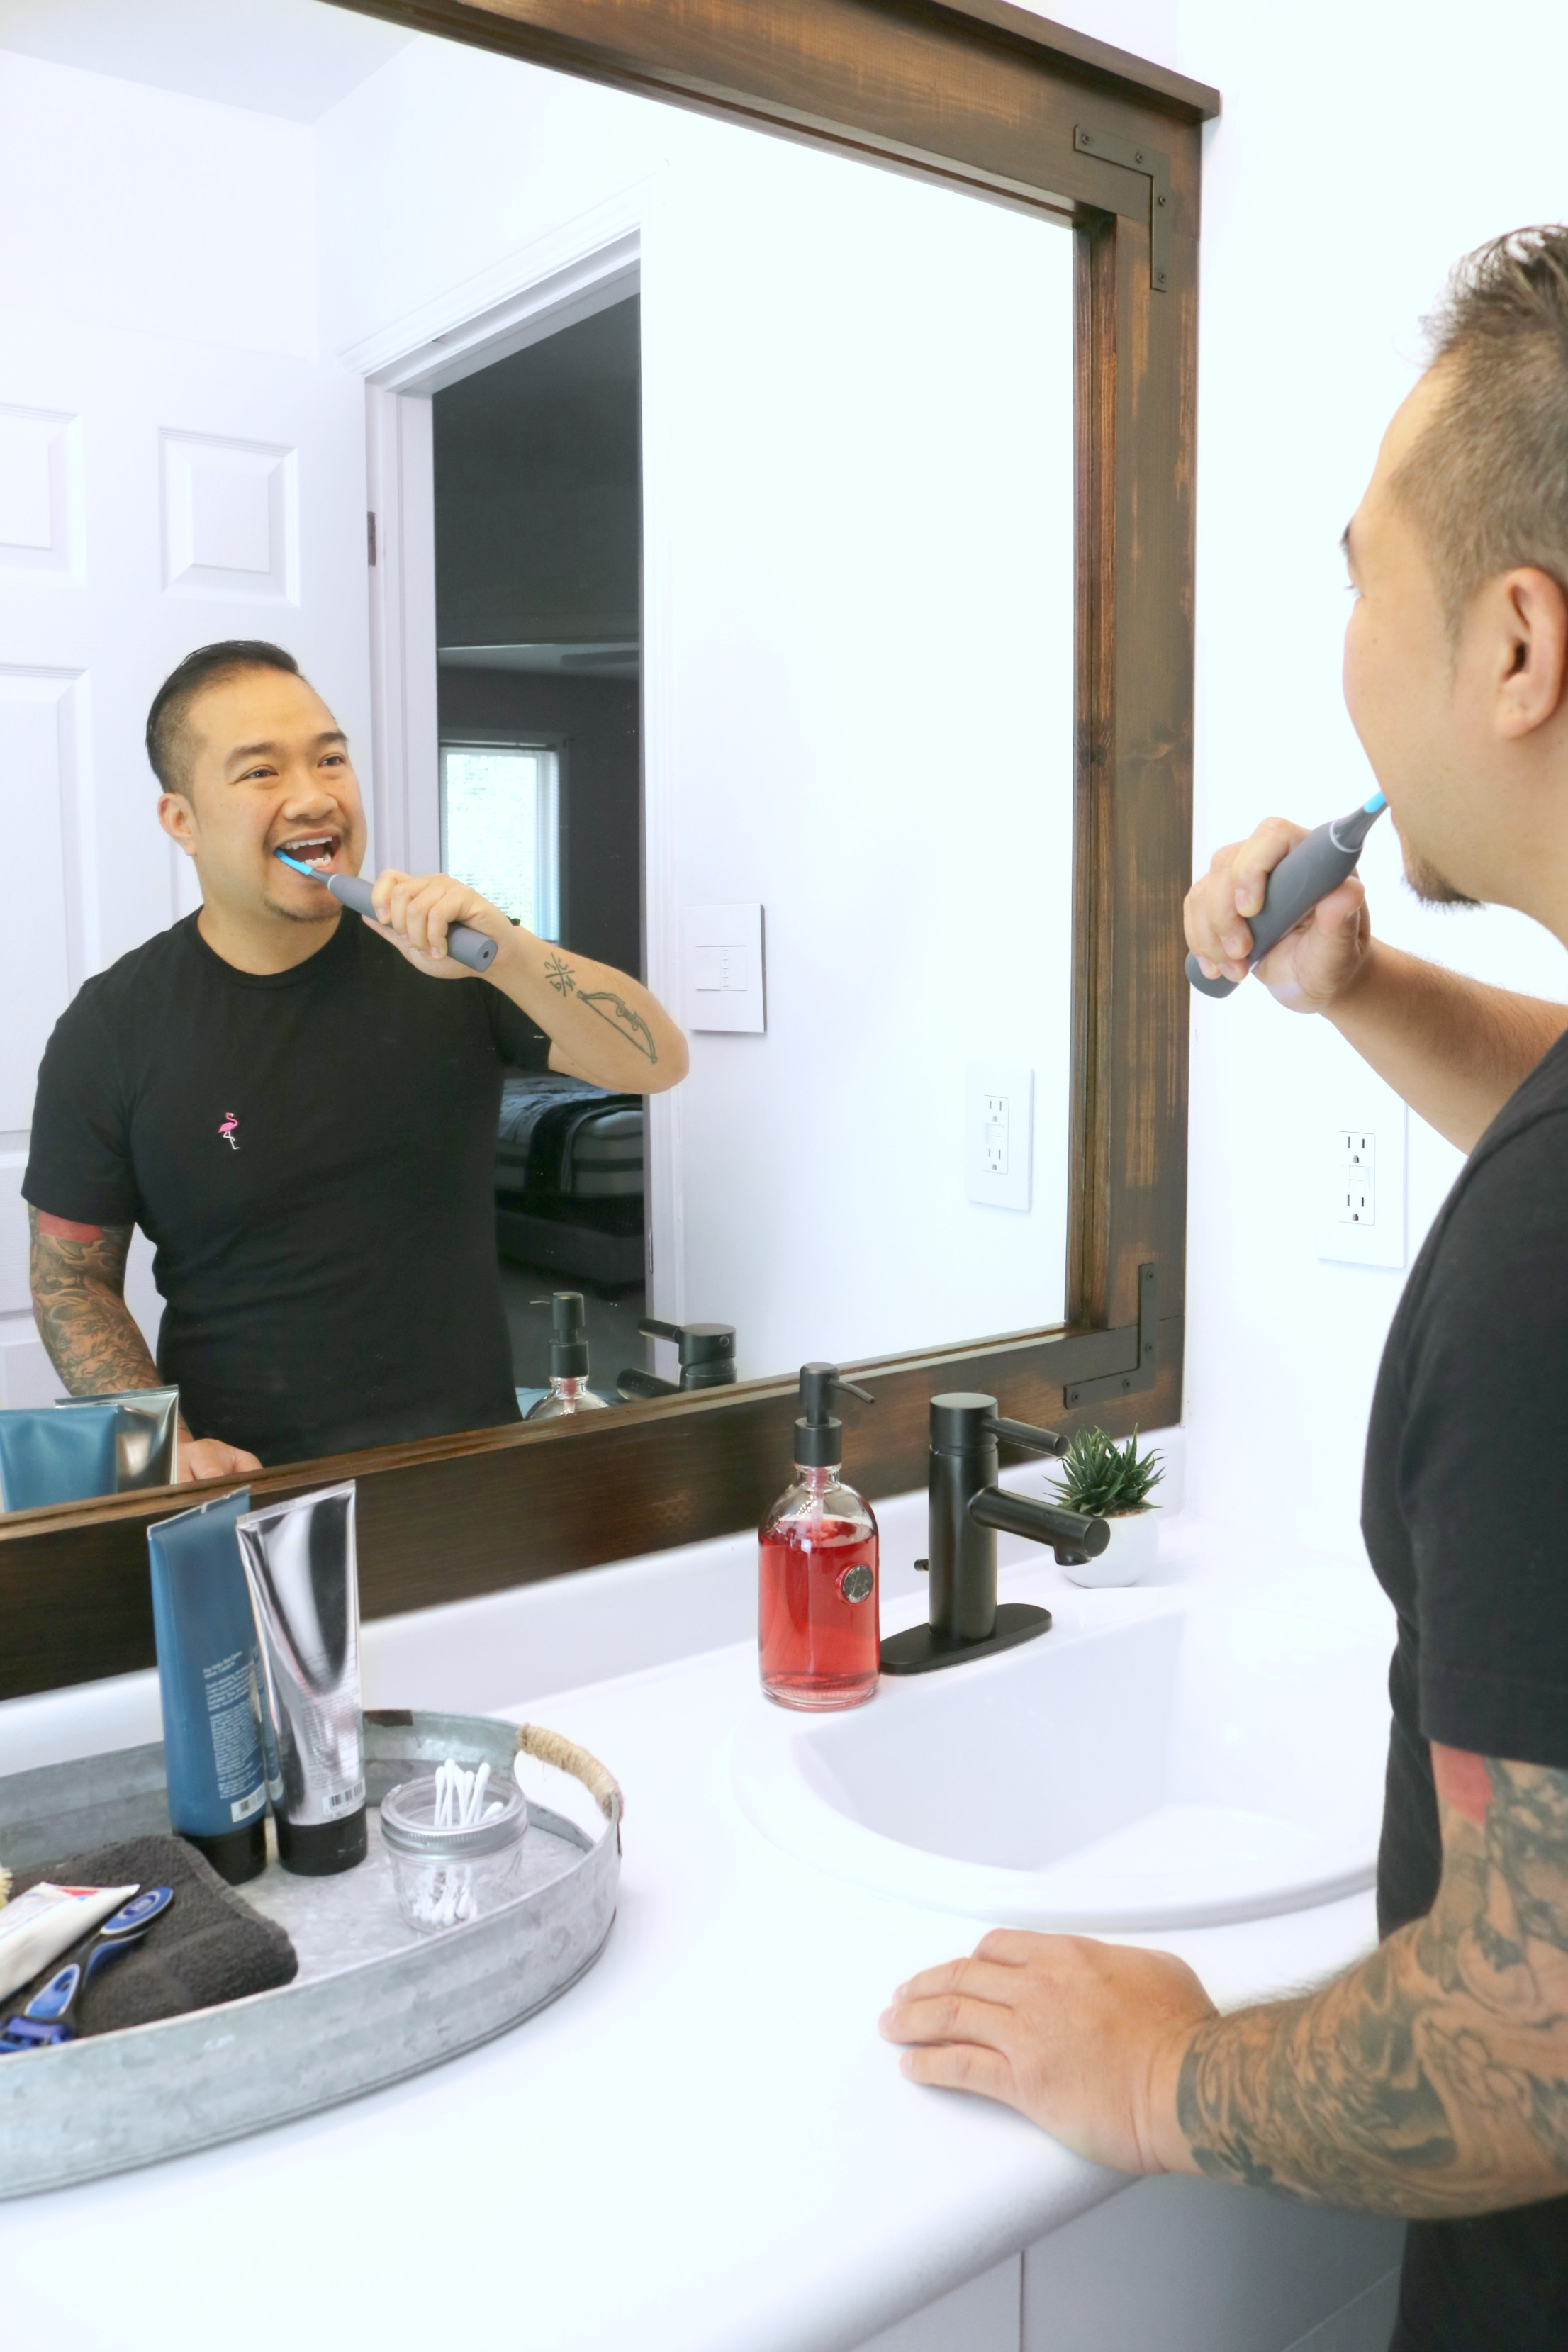 Darasak brushing his teeth in front of mirror with his Cari Pro toothbrush.